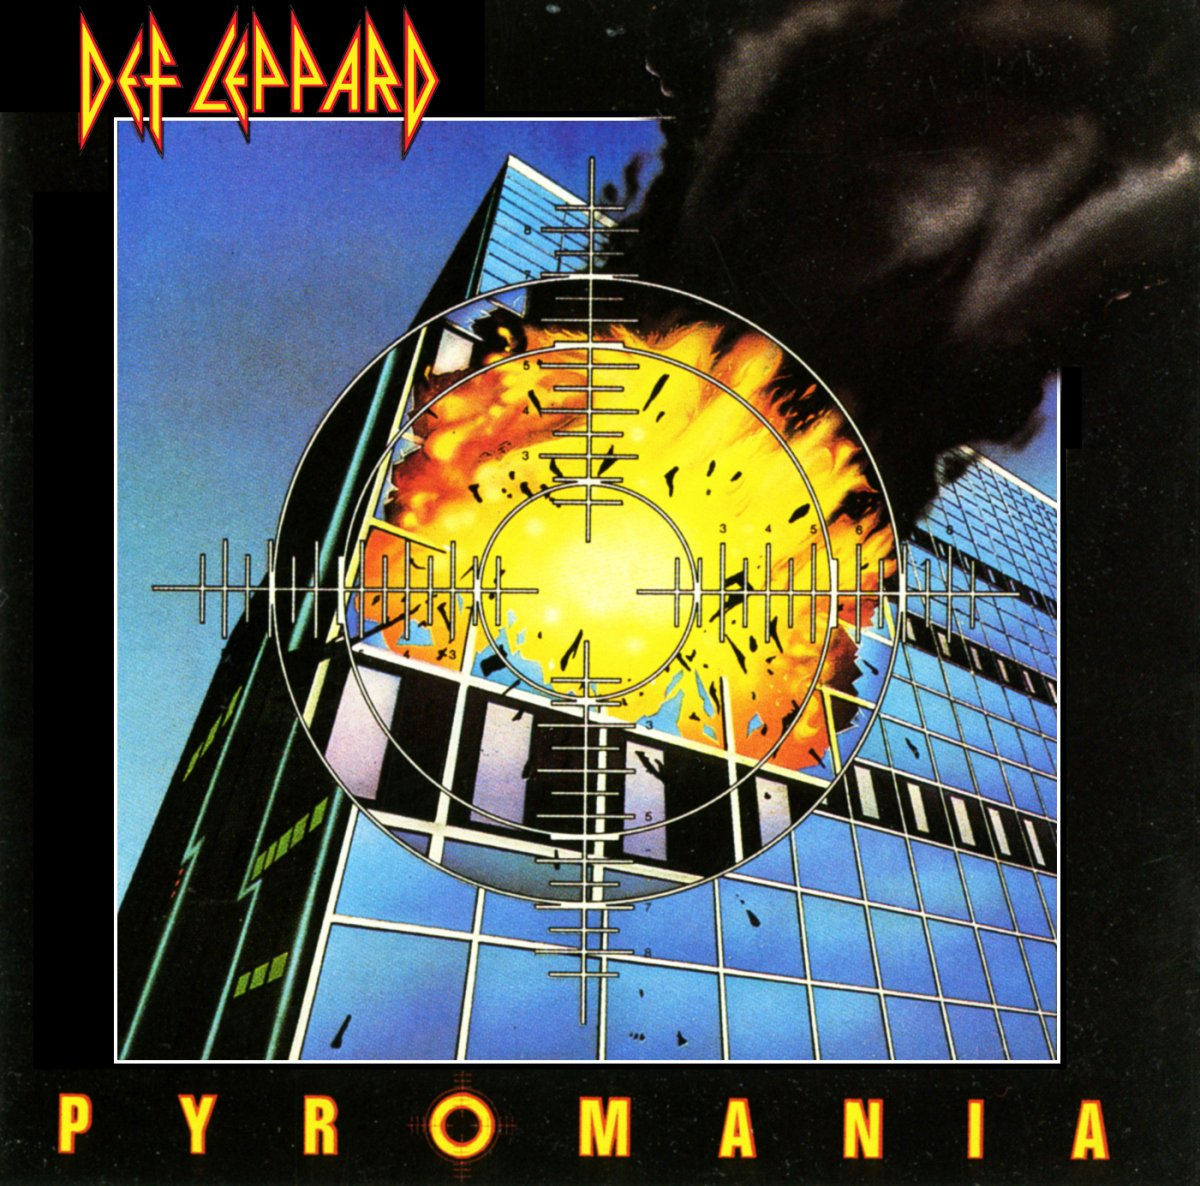 This Day in #DefLeppard History - 20 January 1983 - #Pyromania was released! Roll call...what's your favorite song! https://t.co/Xv30pnAH8Q